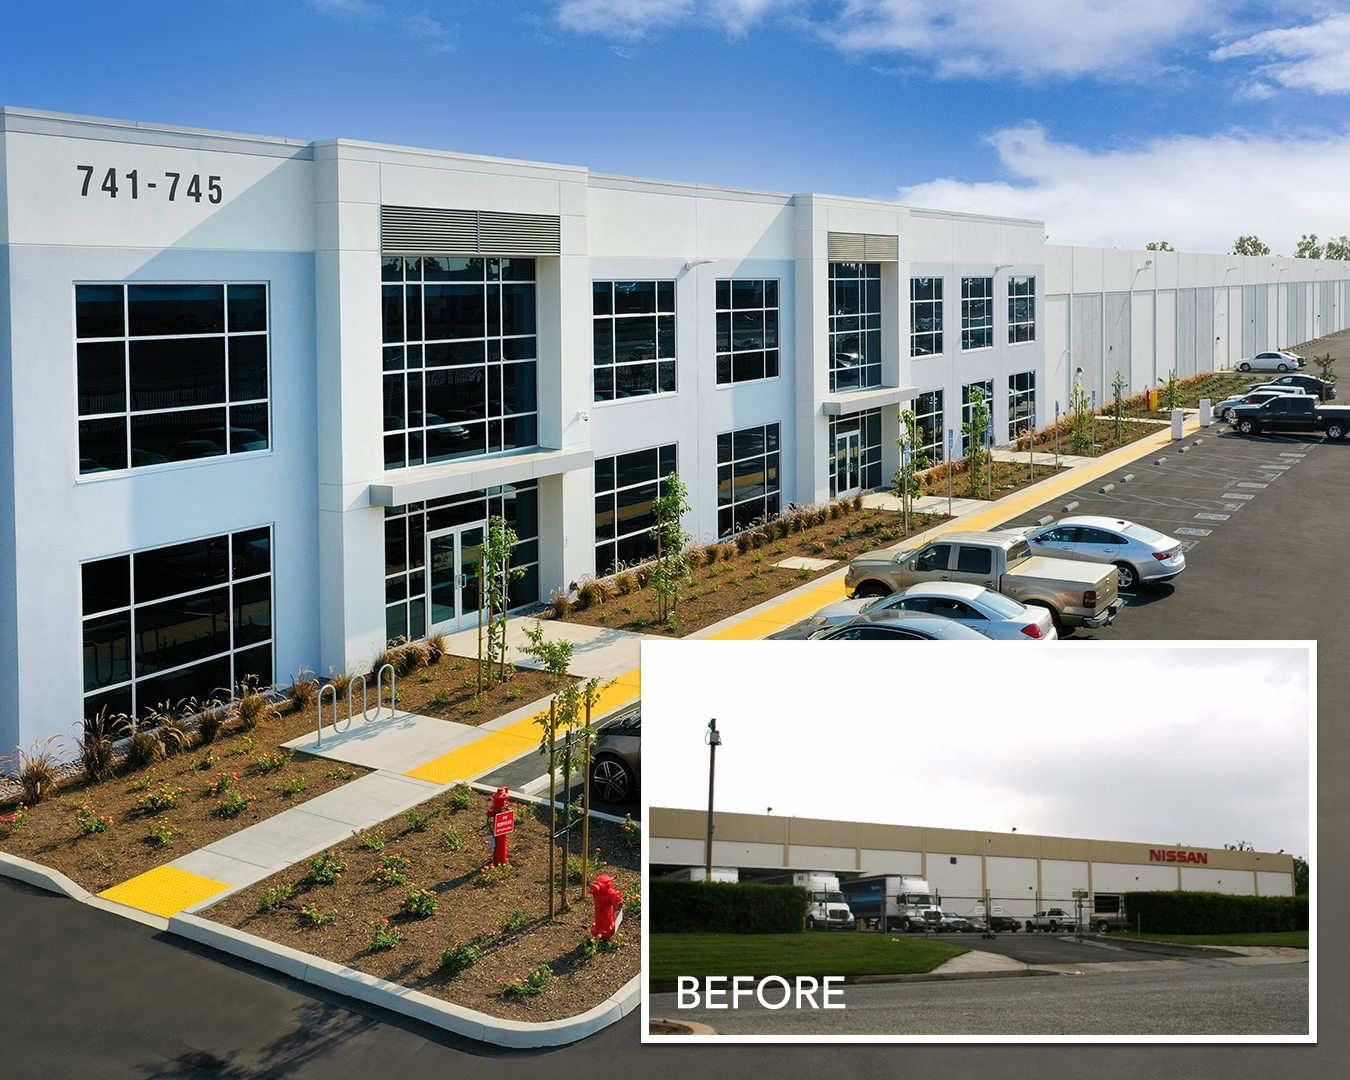 SRG Commercial Property Services Repositions 381K+ SF Building in Compton, CA